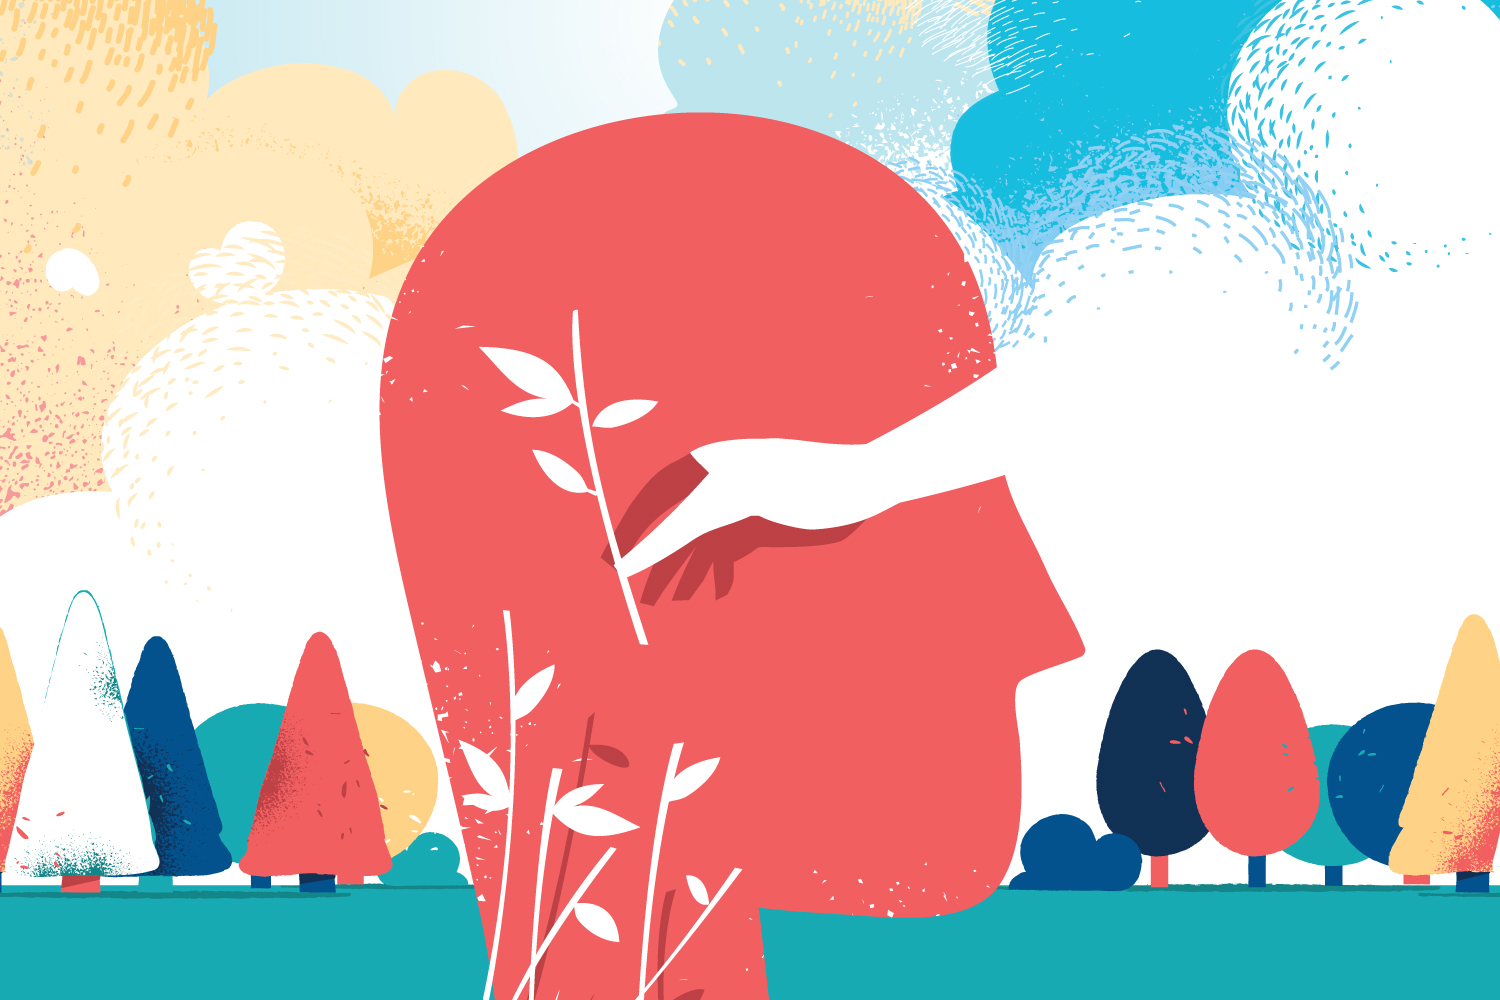 A brightly-colored abstract illustration shows a hand picking blooms from a character's mind.